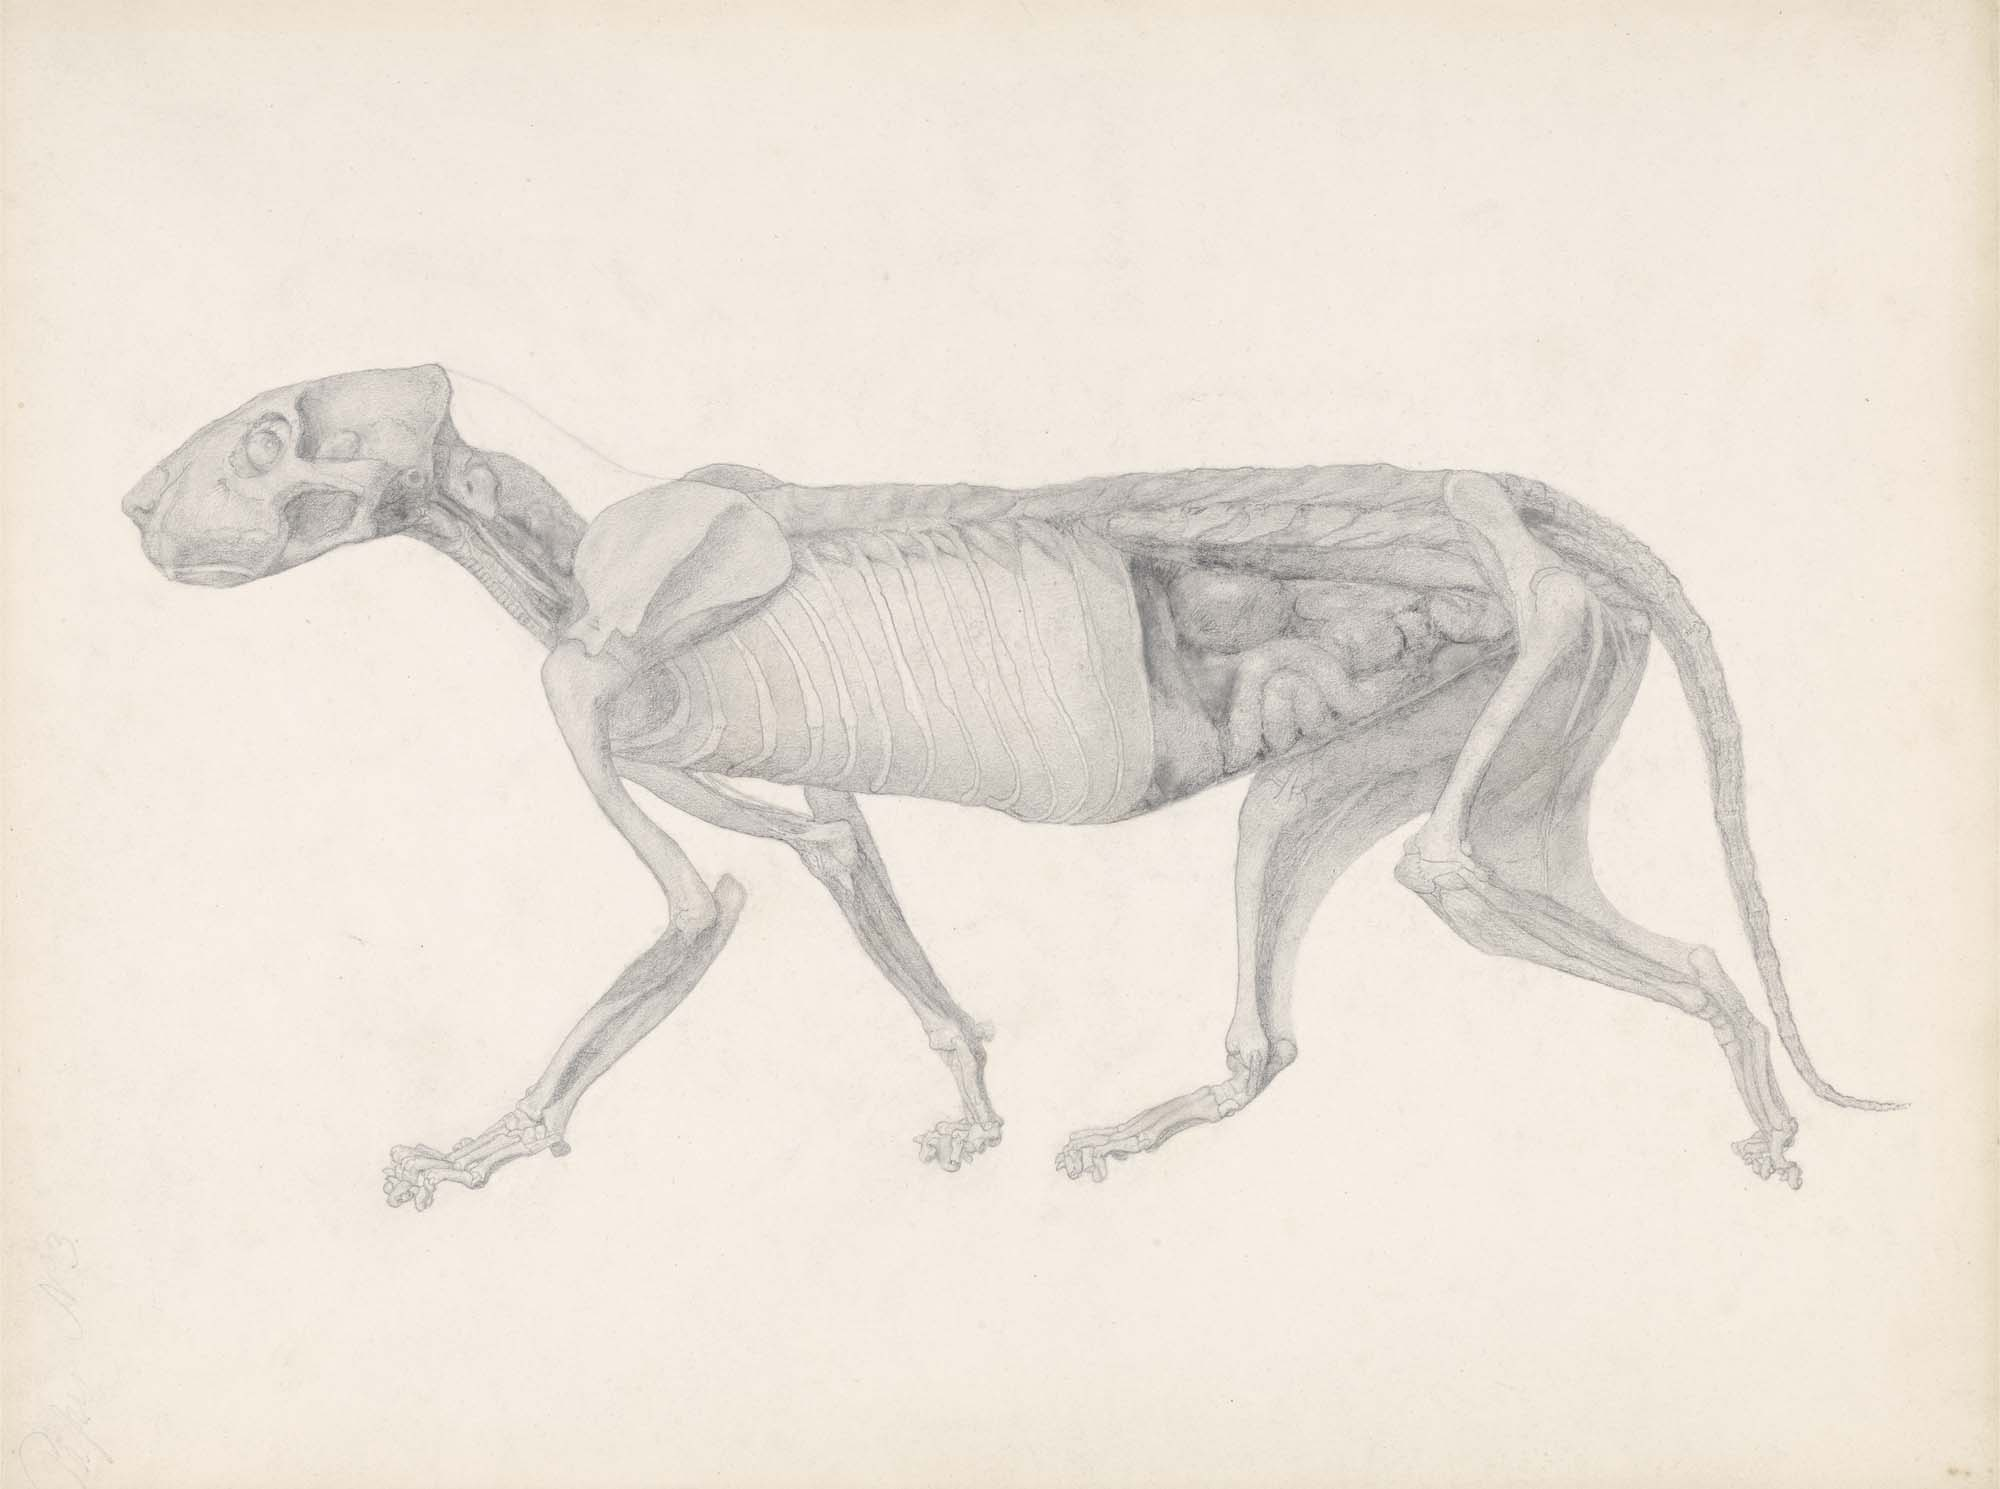 a side view drawing of a tiger showing muscles and organs